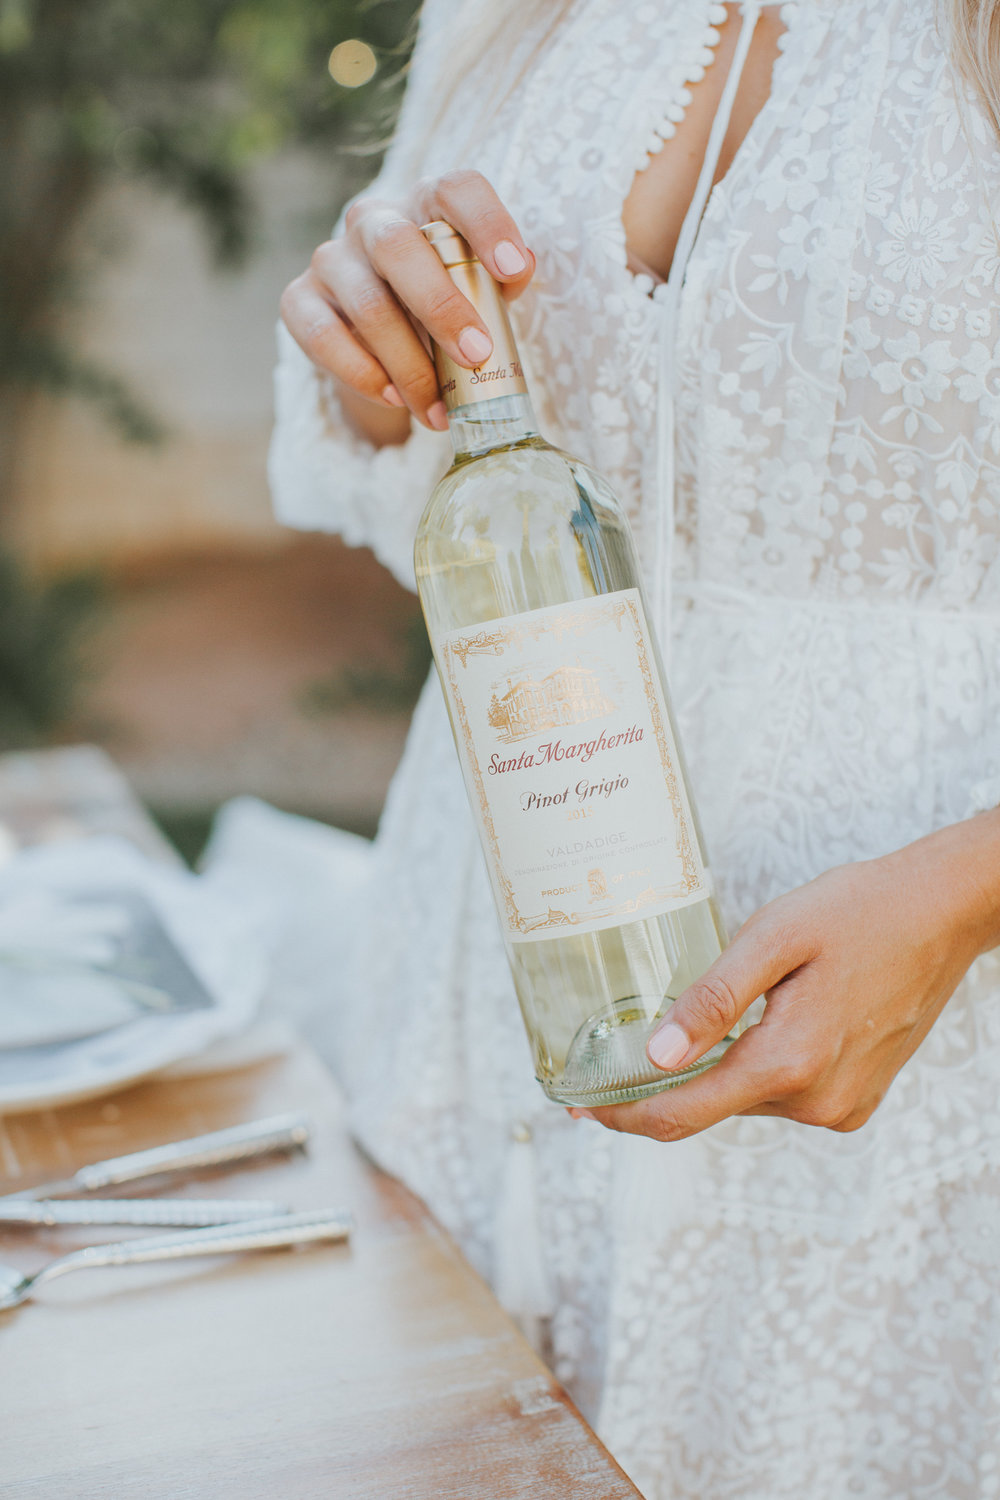 Pinot Grigio, perfect for a warm summer dinner party | A Fabulous Fete